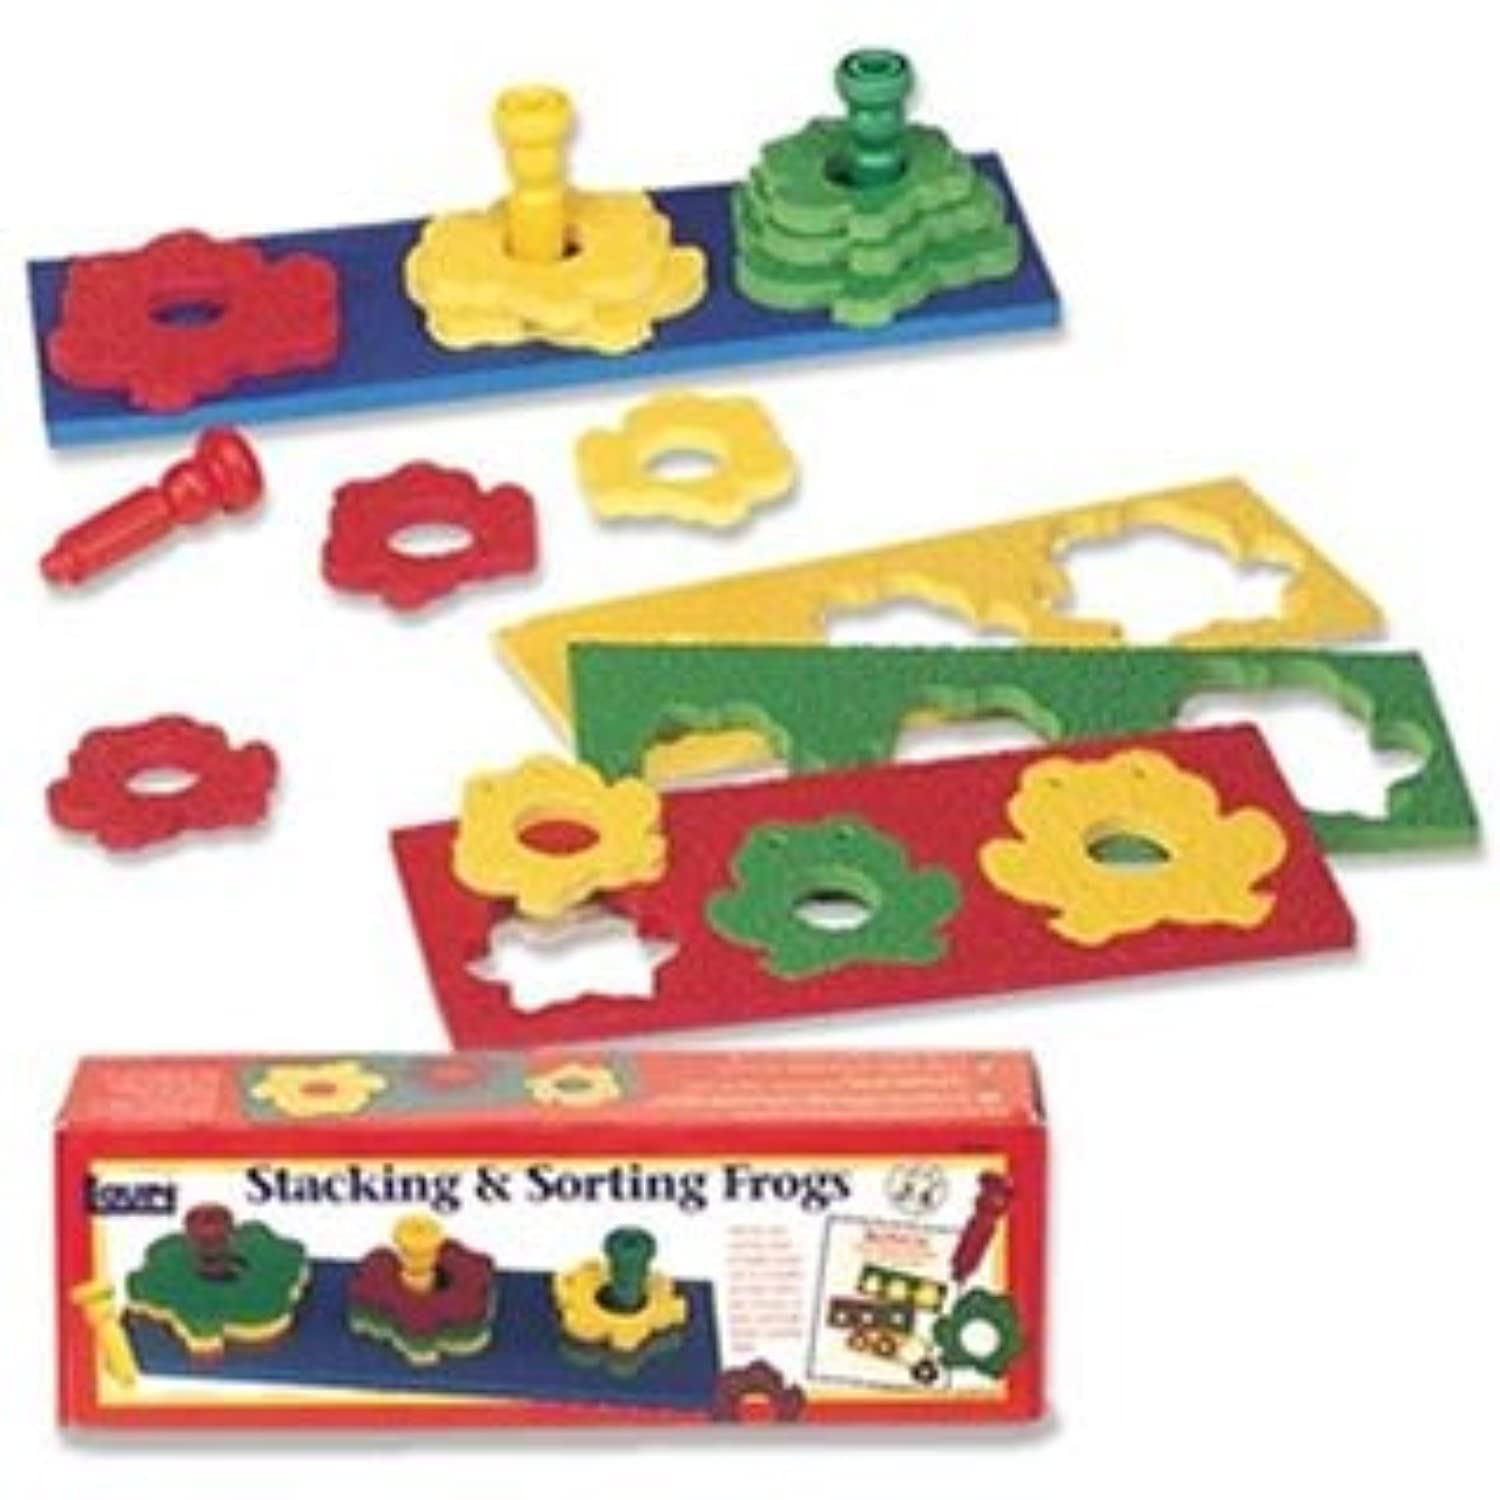 Stacking & Sorting Frogs by Patch Products